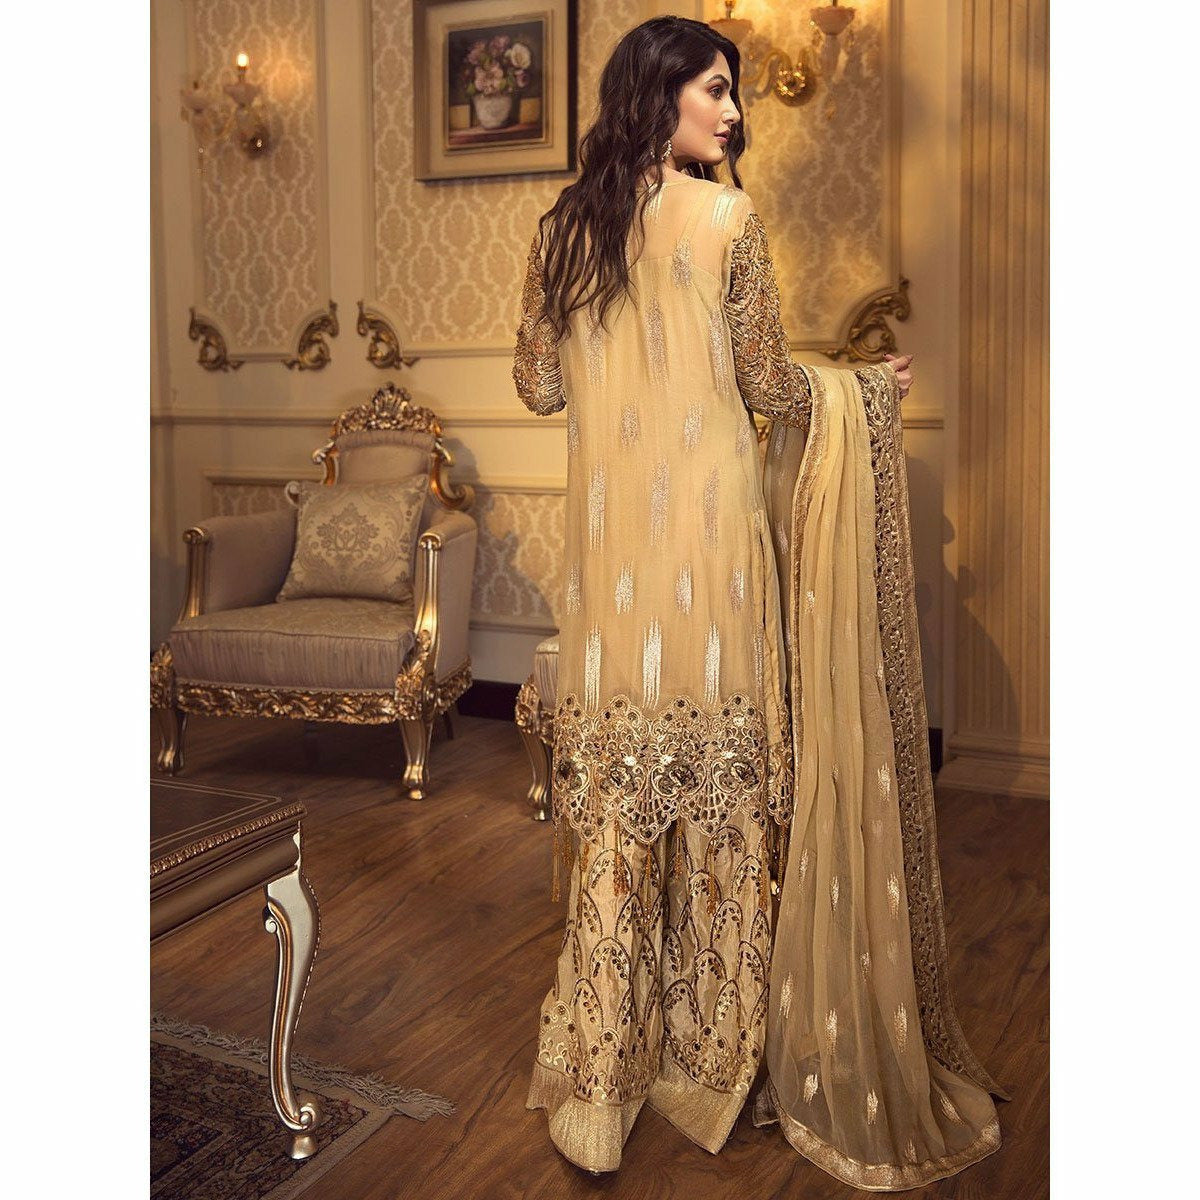 pakistani clothes online, pakistani clothes online UK, zebtan UK